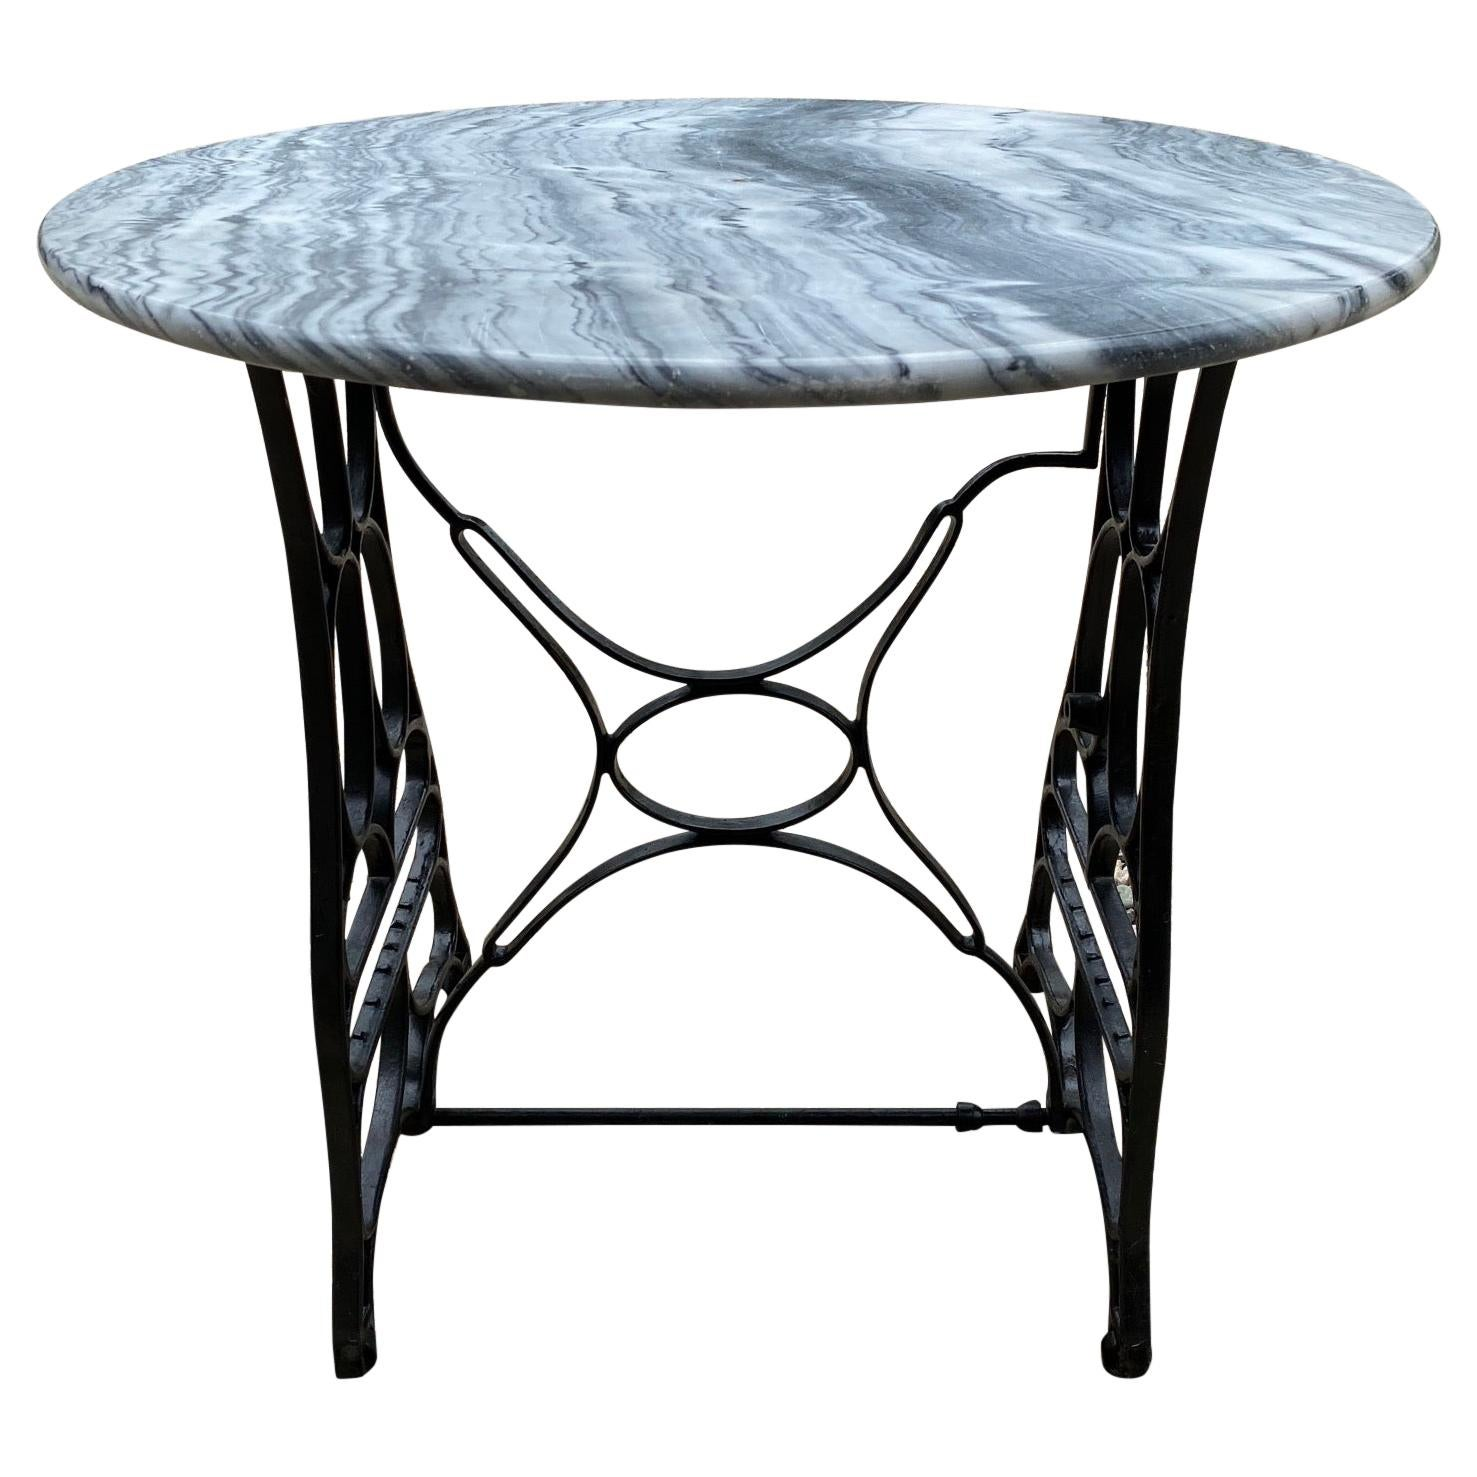 Round Marble Top Garden Dining Table